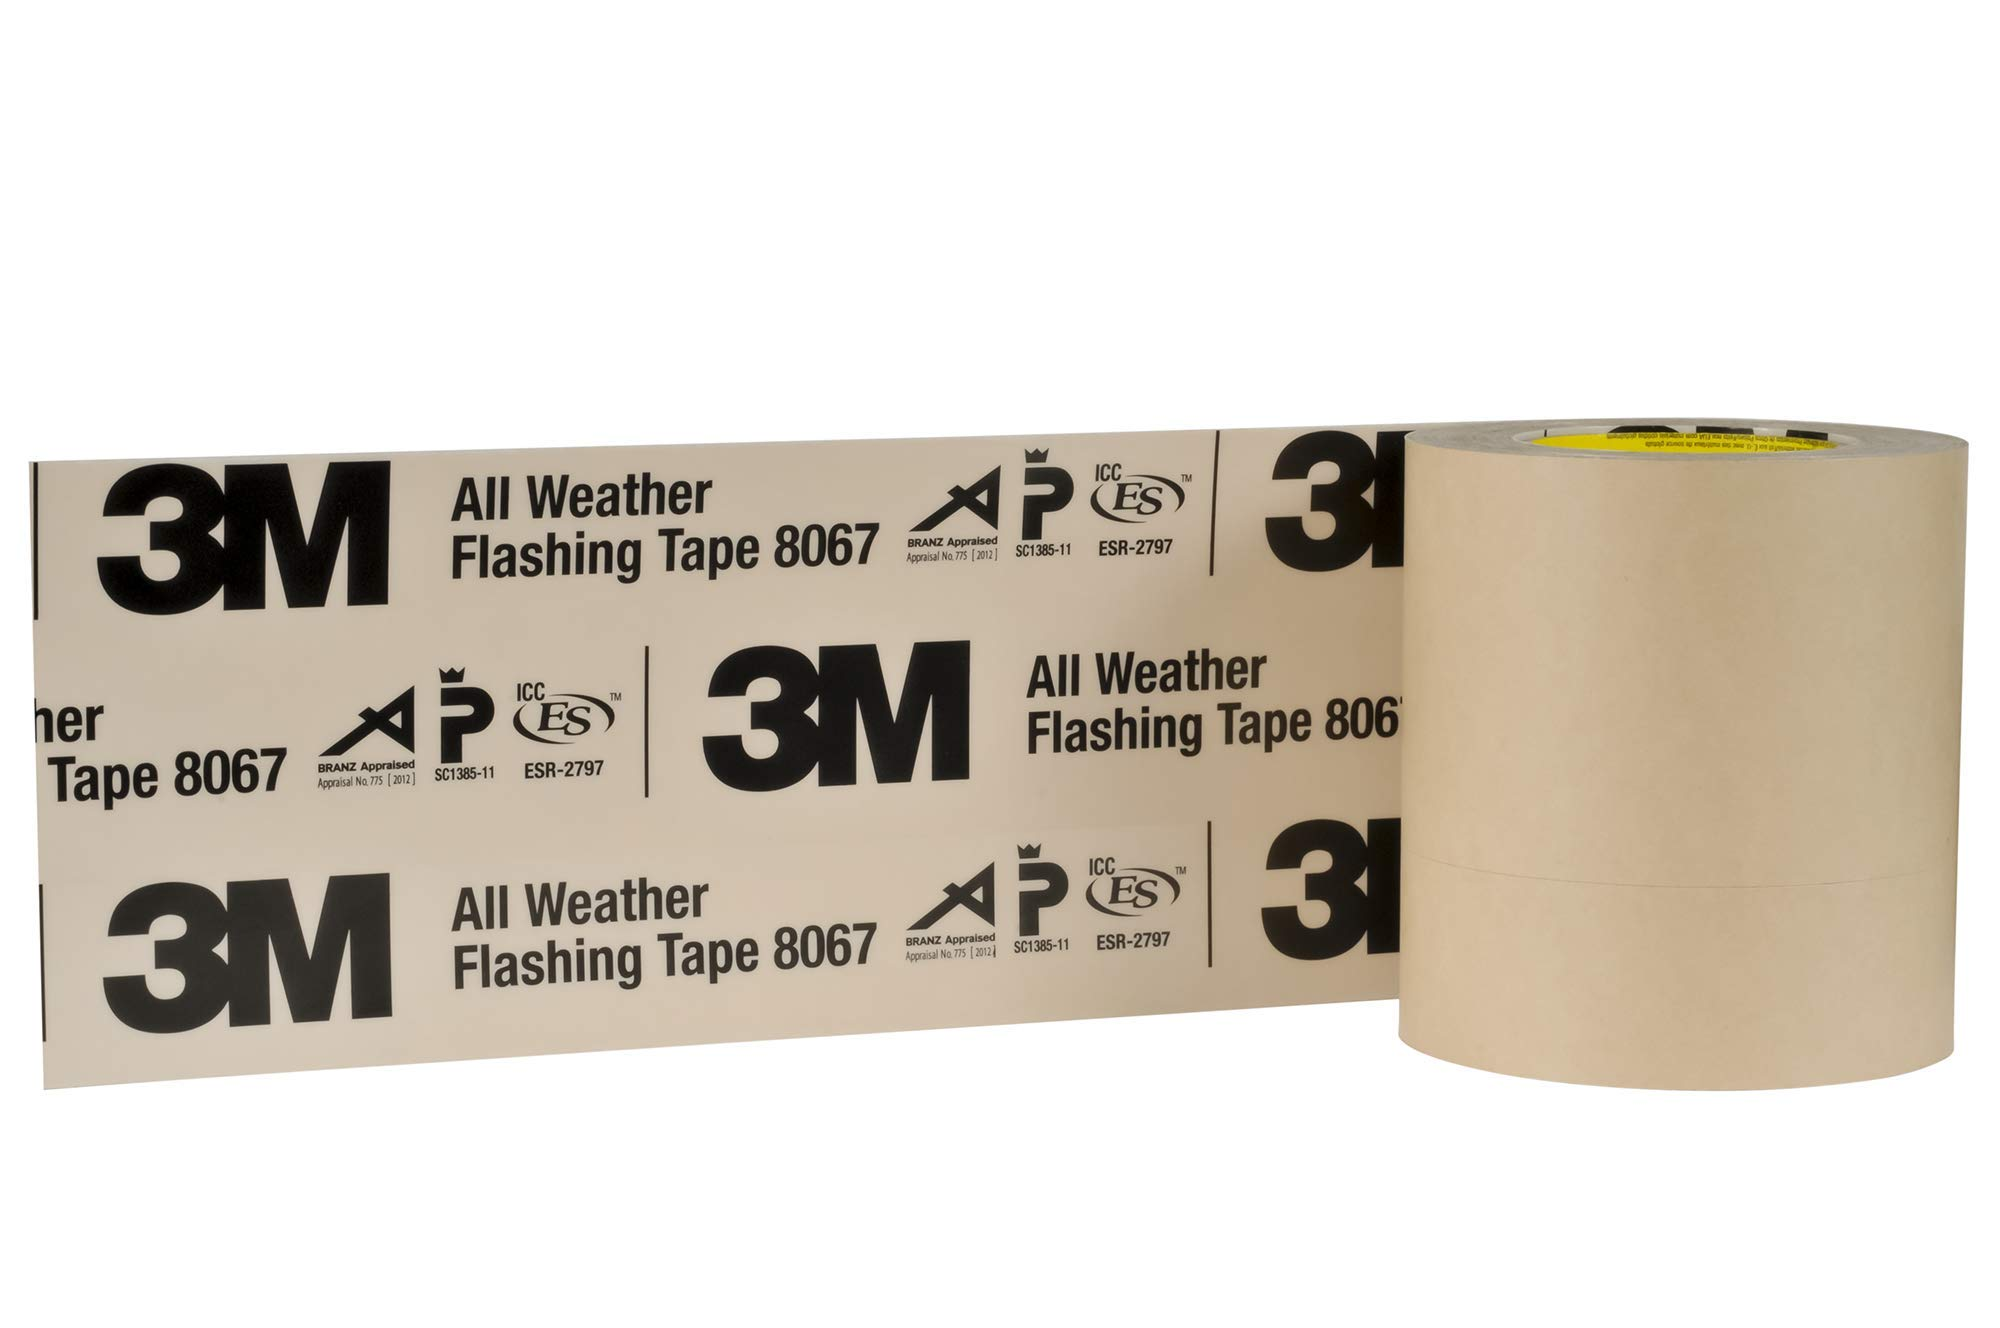 3M All Weather Flashing Tape 8067 Tan, 6 in x 75 ft Slit Liner (Pack of 1) by 3M